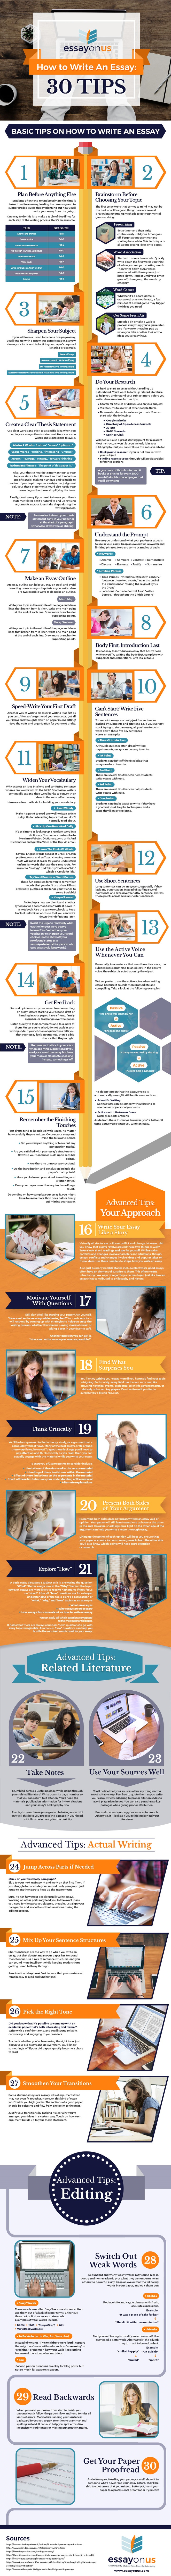 Complete Guide on How to Write an Essay: 30 Tips Revealed!